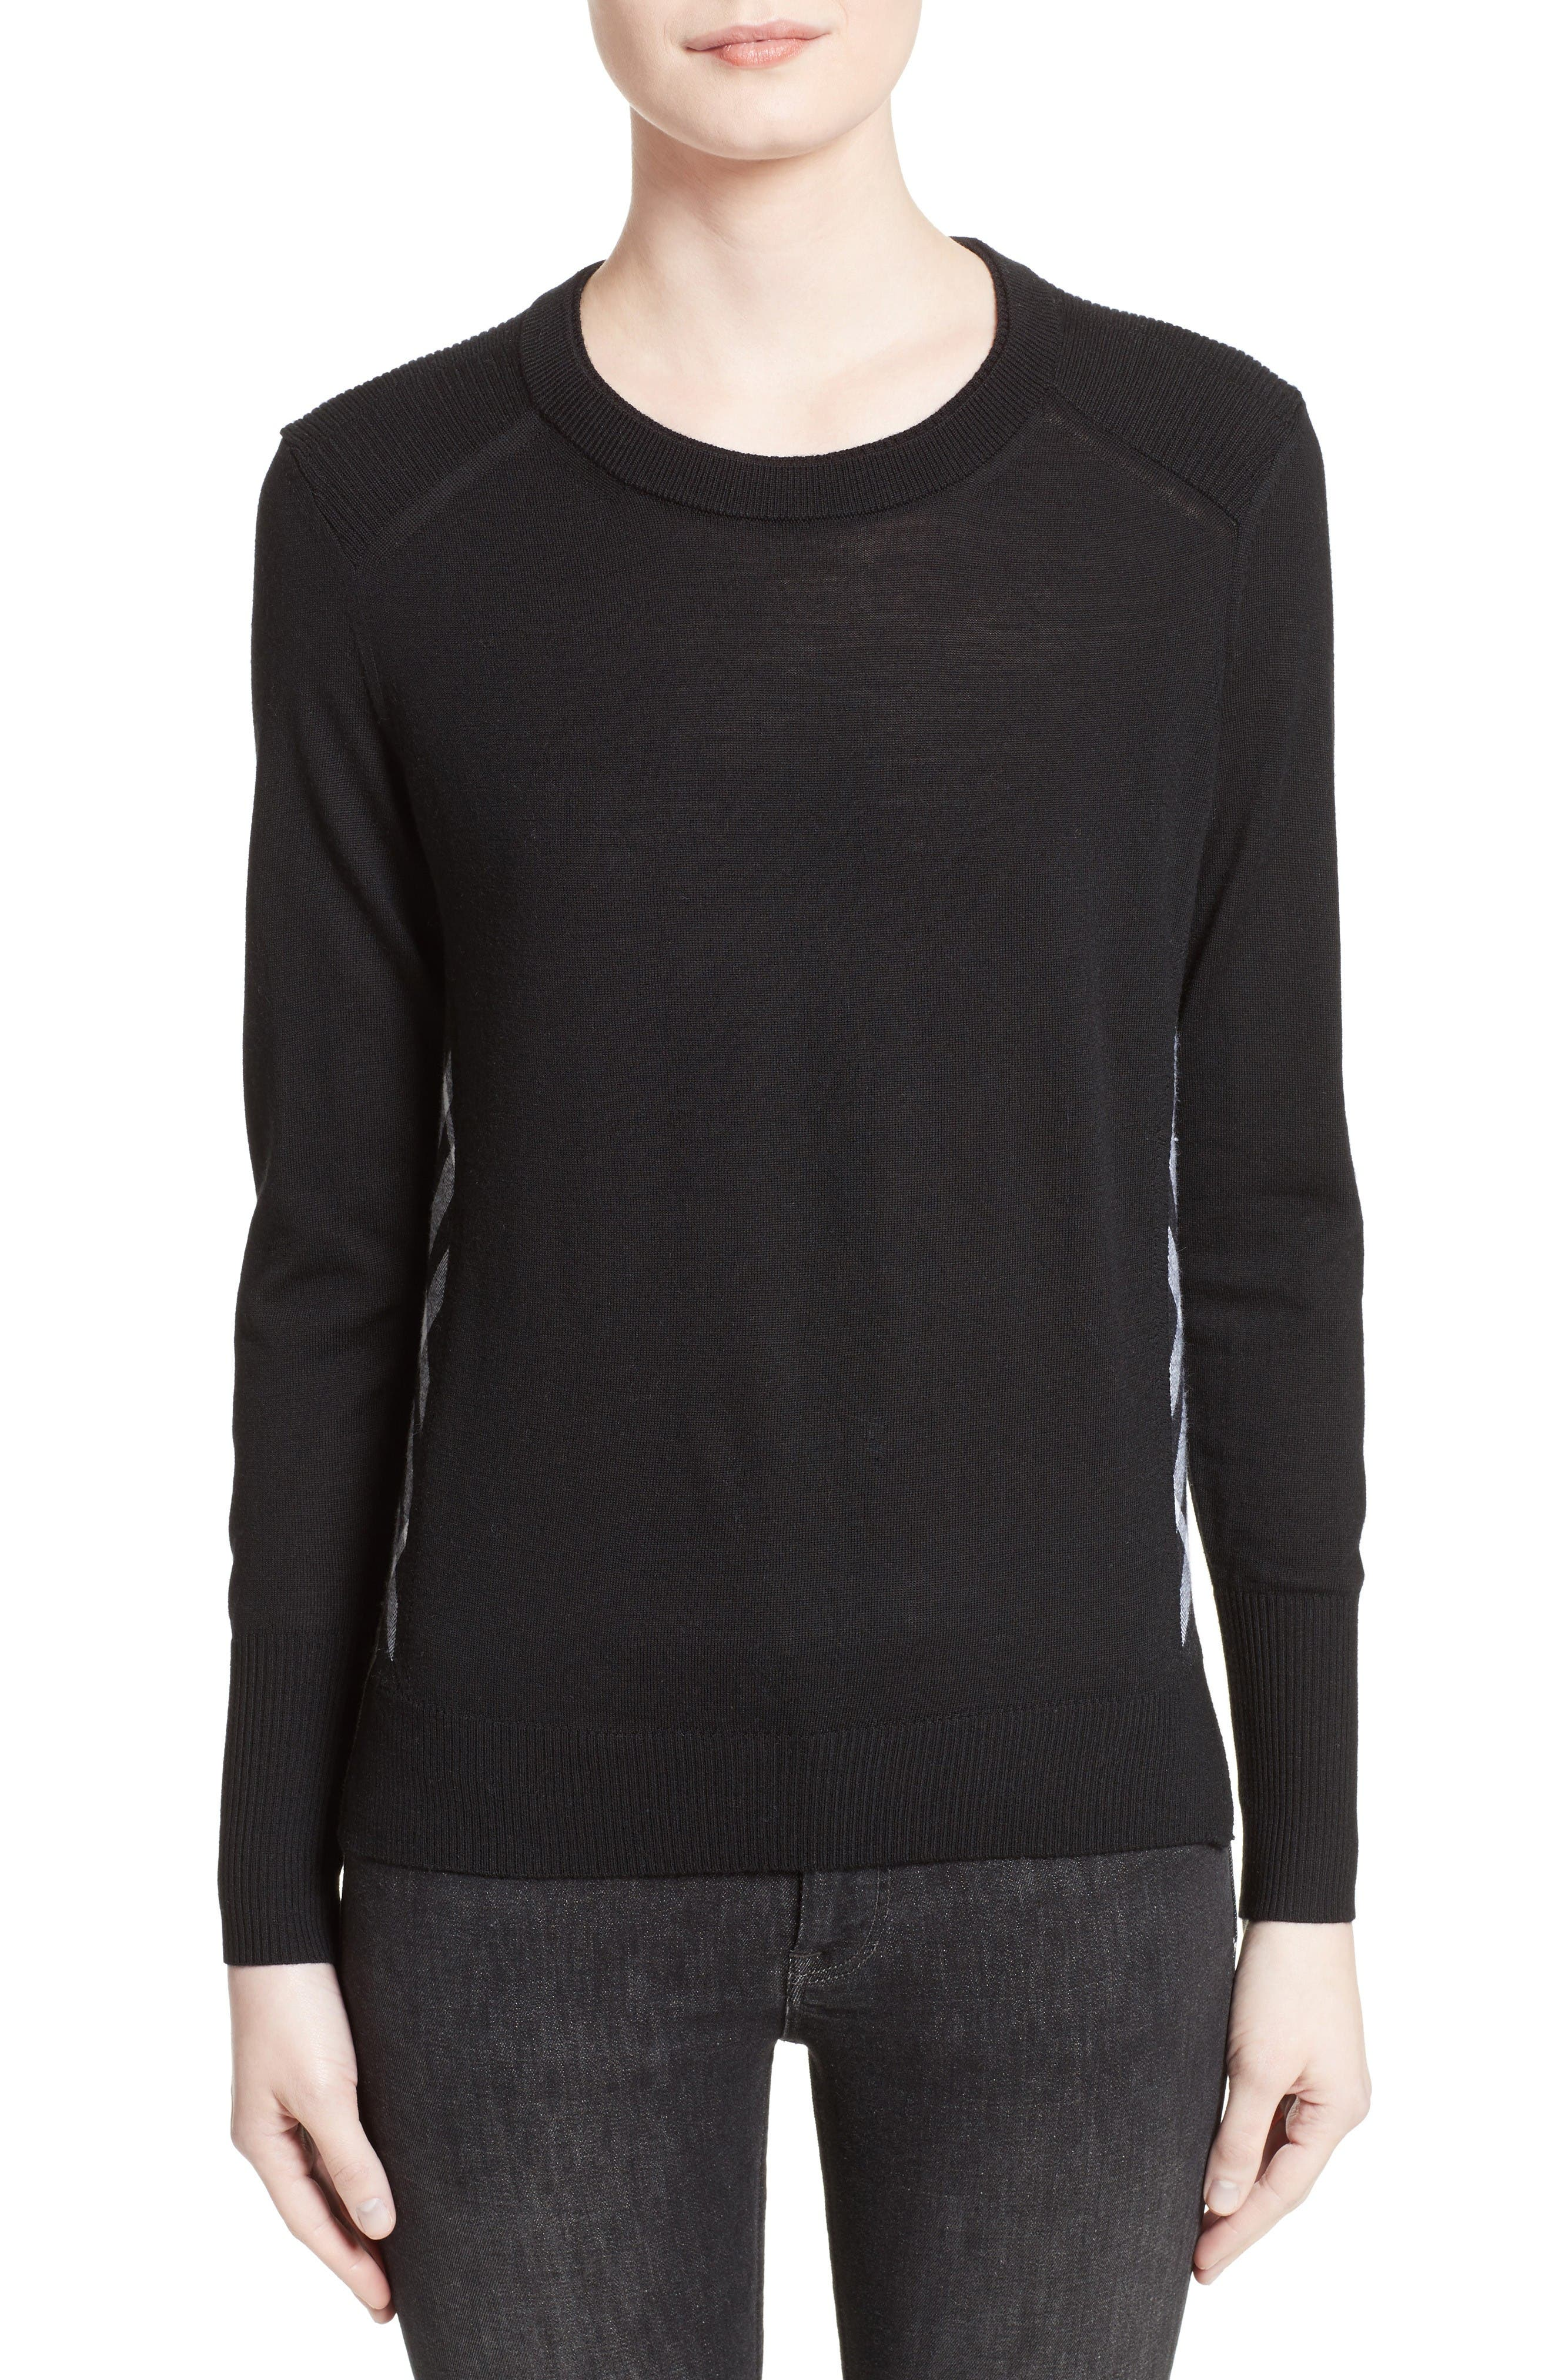 Alternate Image 1 Selected - Burberry Meigan Merino Wool Sweater